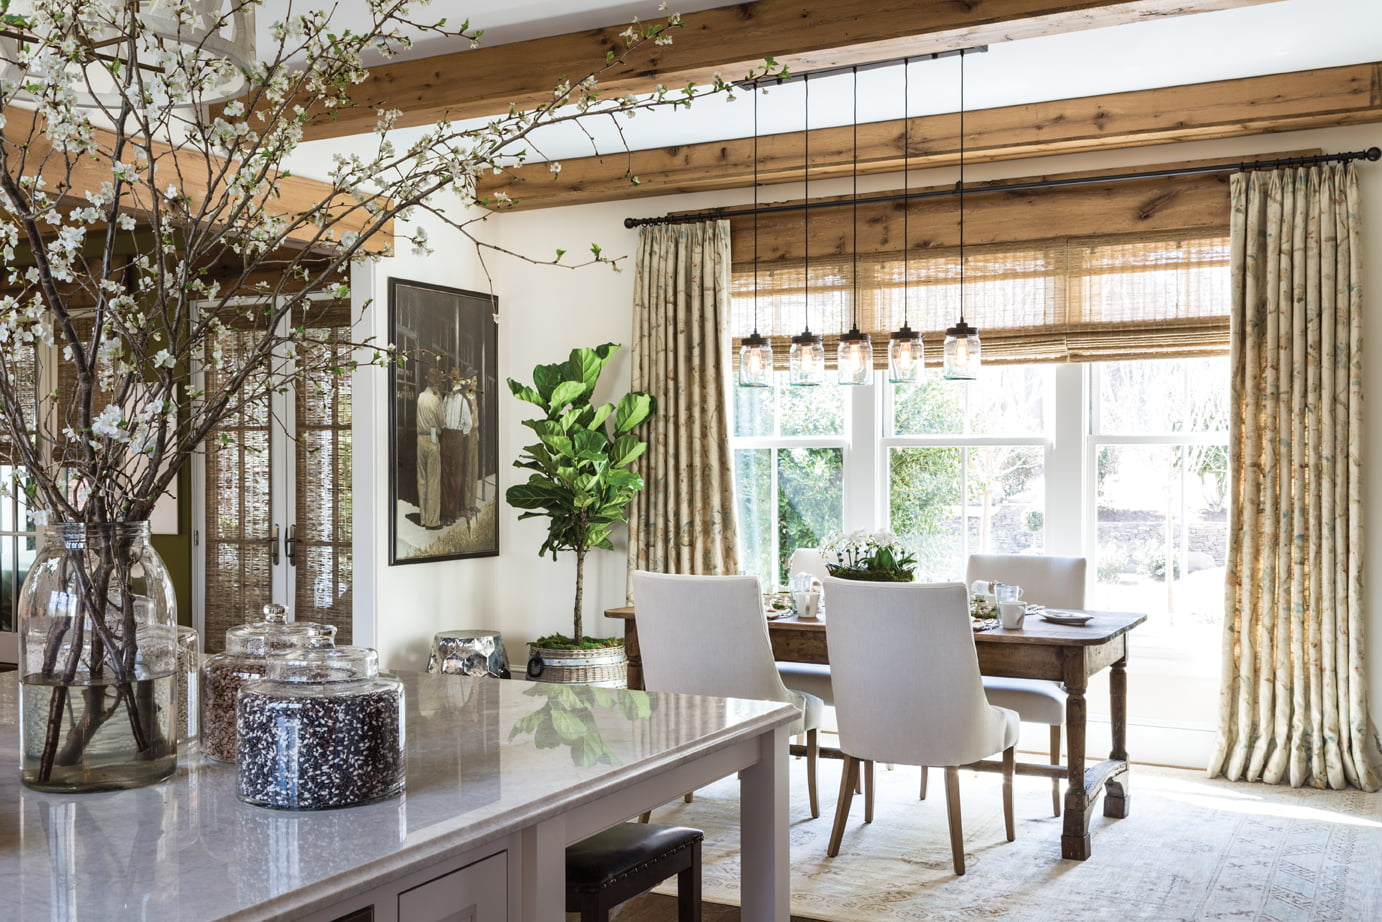 The Breakfast Area By Sarah Wessel Designs Ltd Show House Magic Home Design Magazine